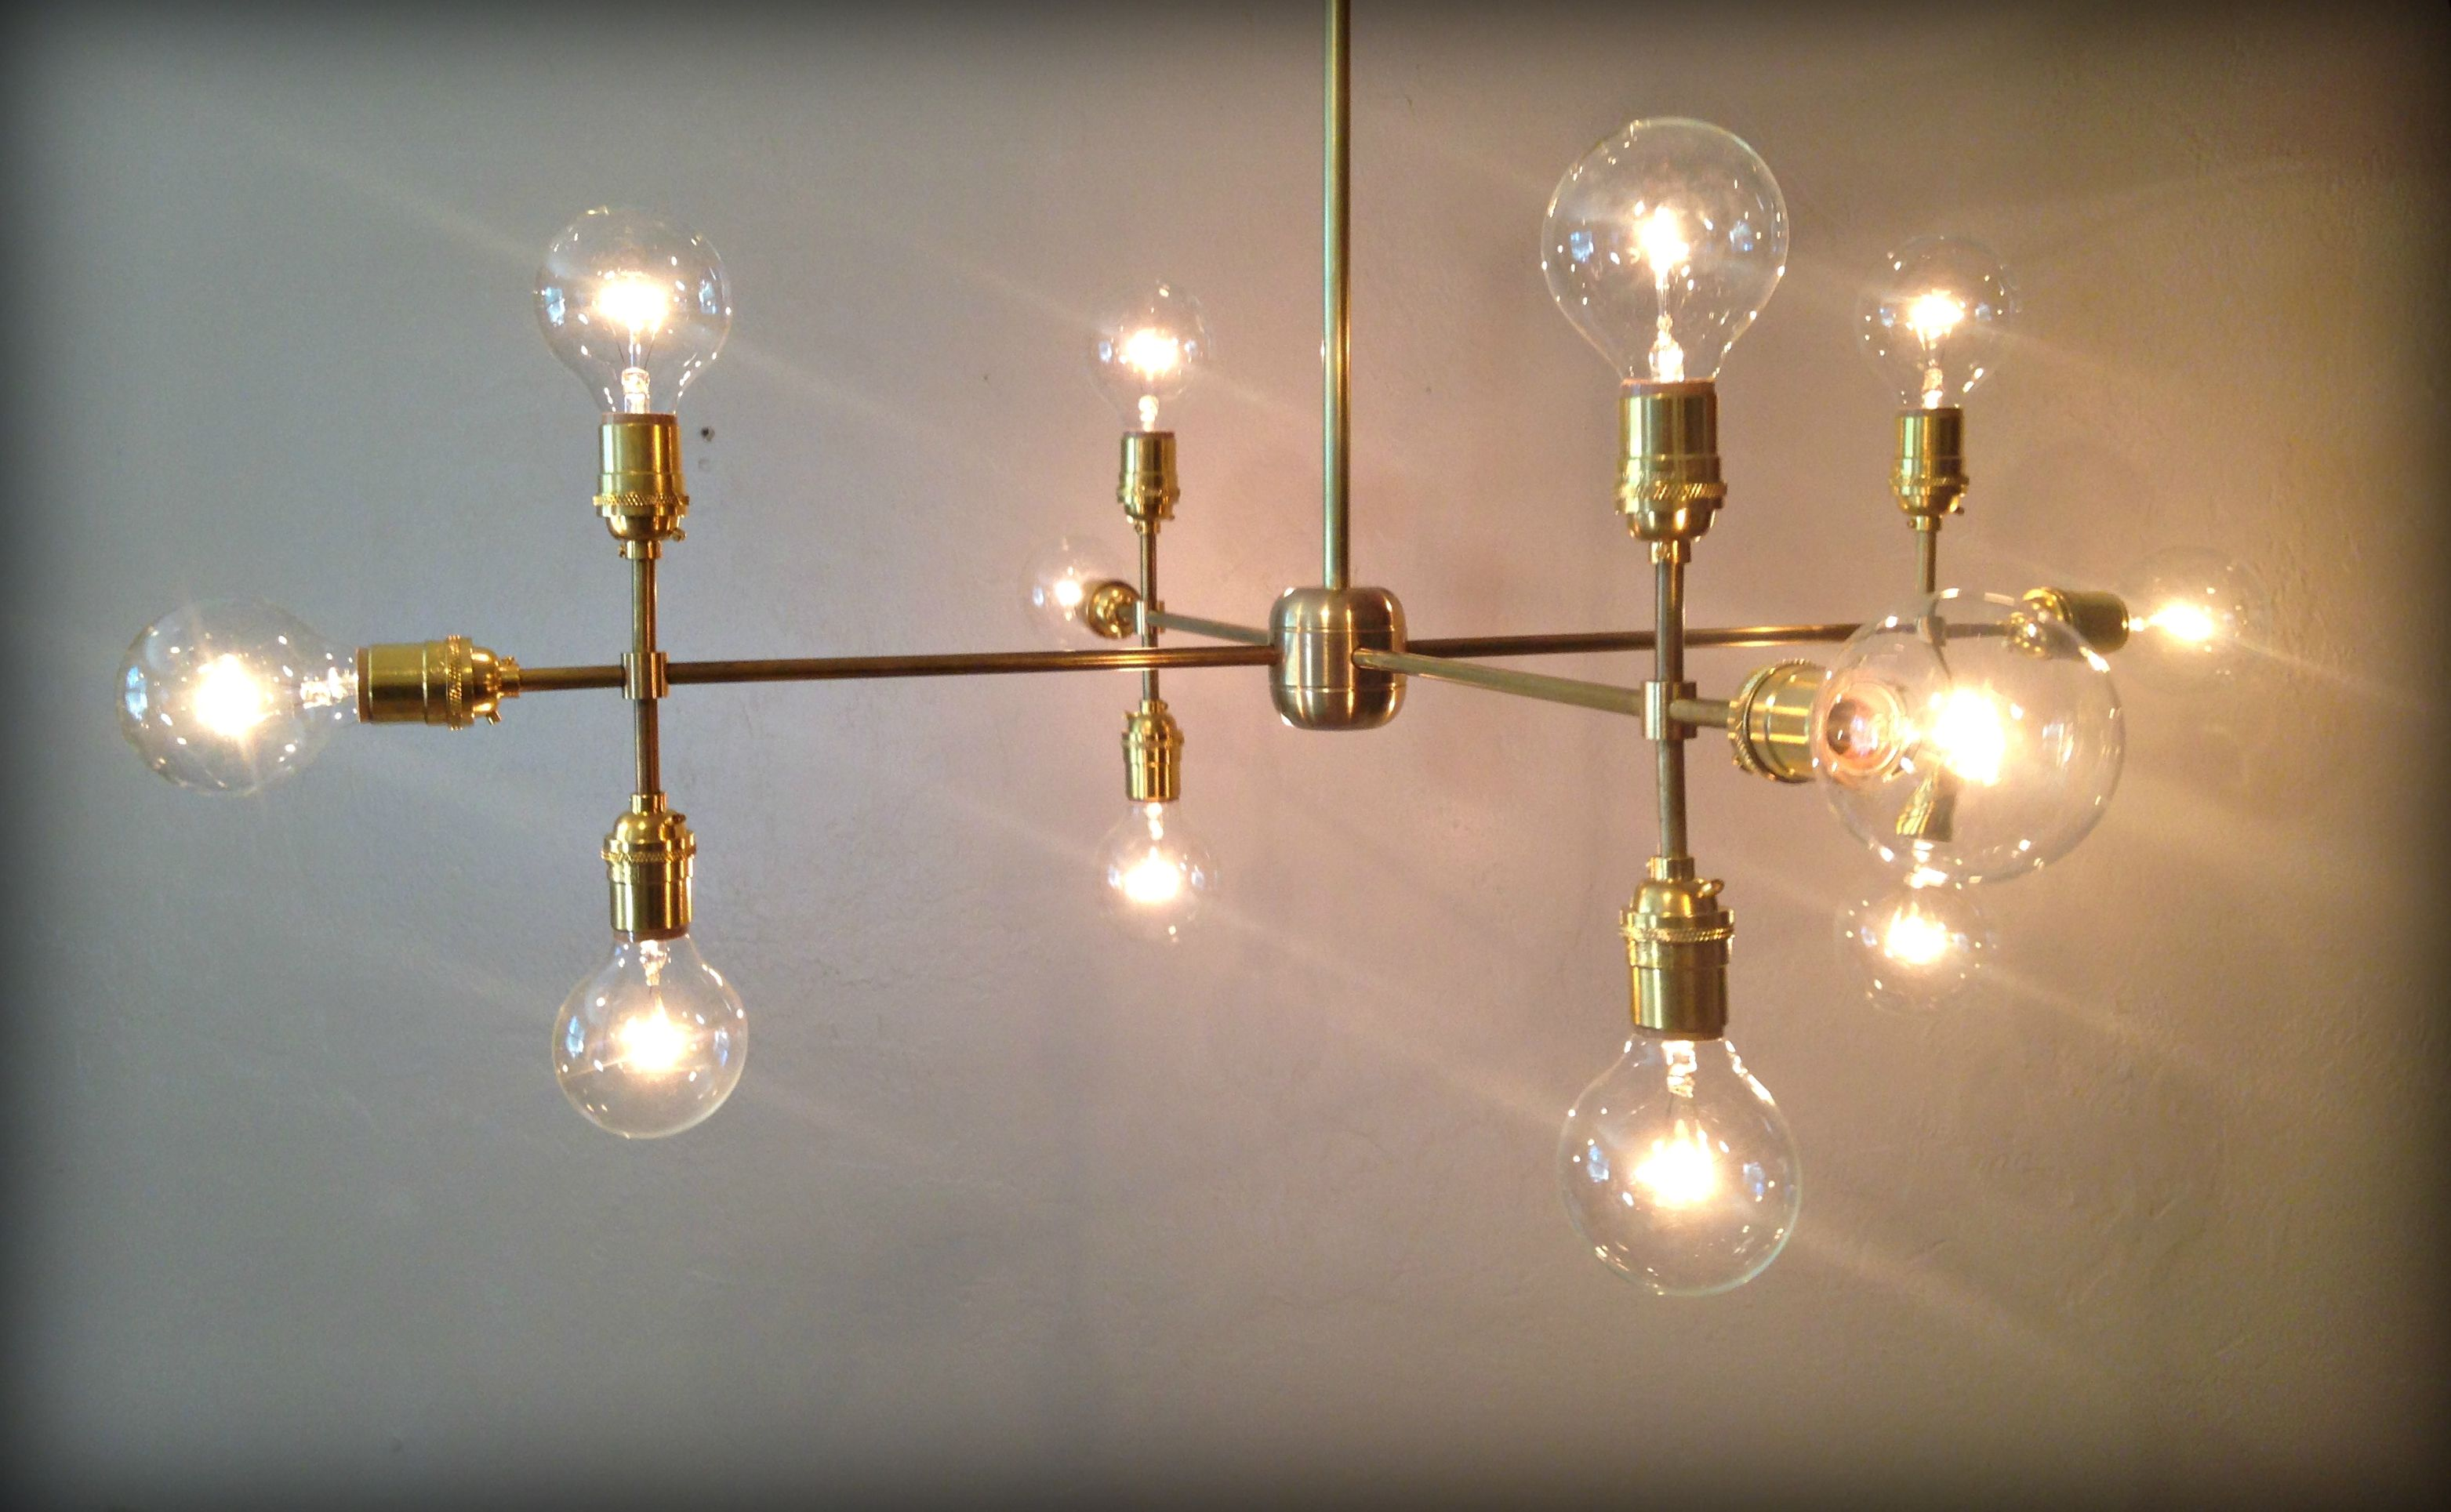 fixture lamp sockets amazon chandelier dp light bulb pendant lemonbest zvcbel com edison retro industrial ceiling vintage